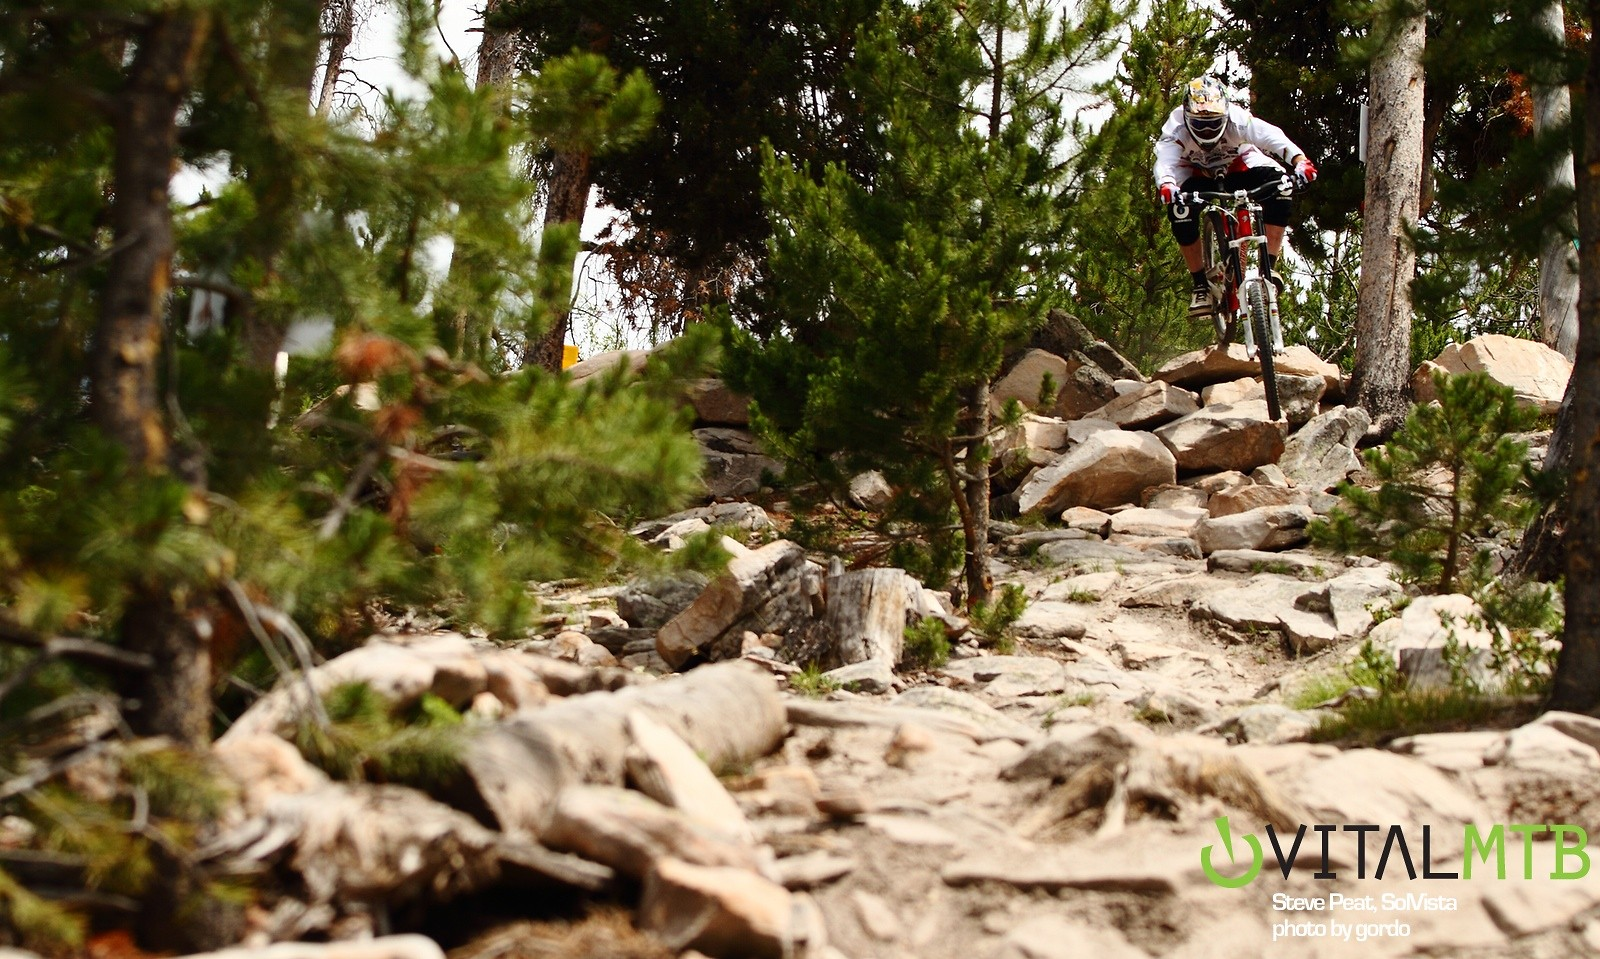 vital mtb desktop wallpapers - mountain bikes feature stories, Powerpoint templates